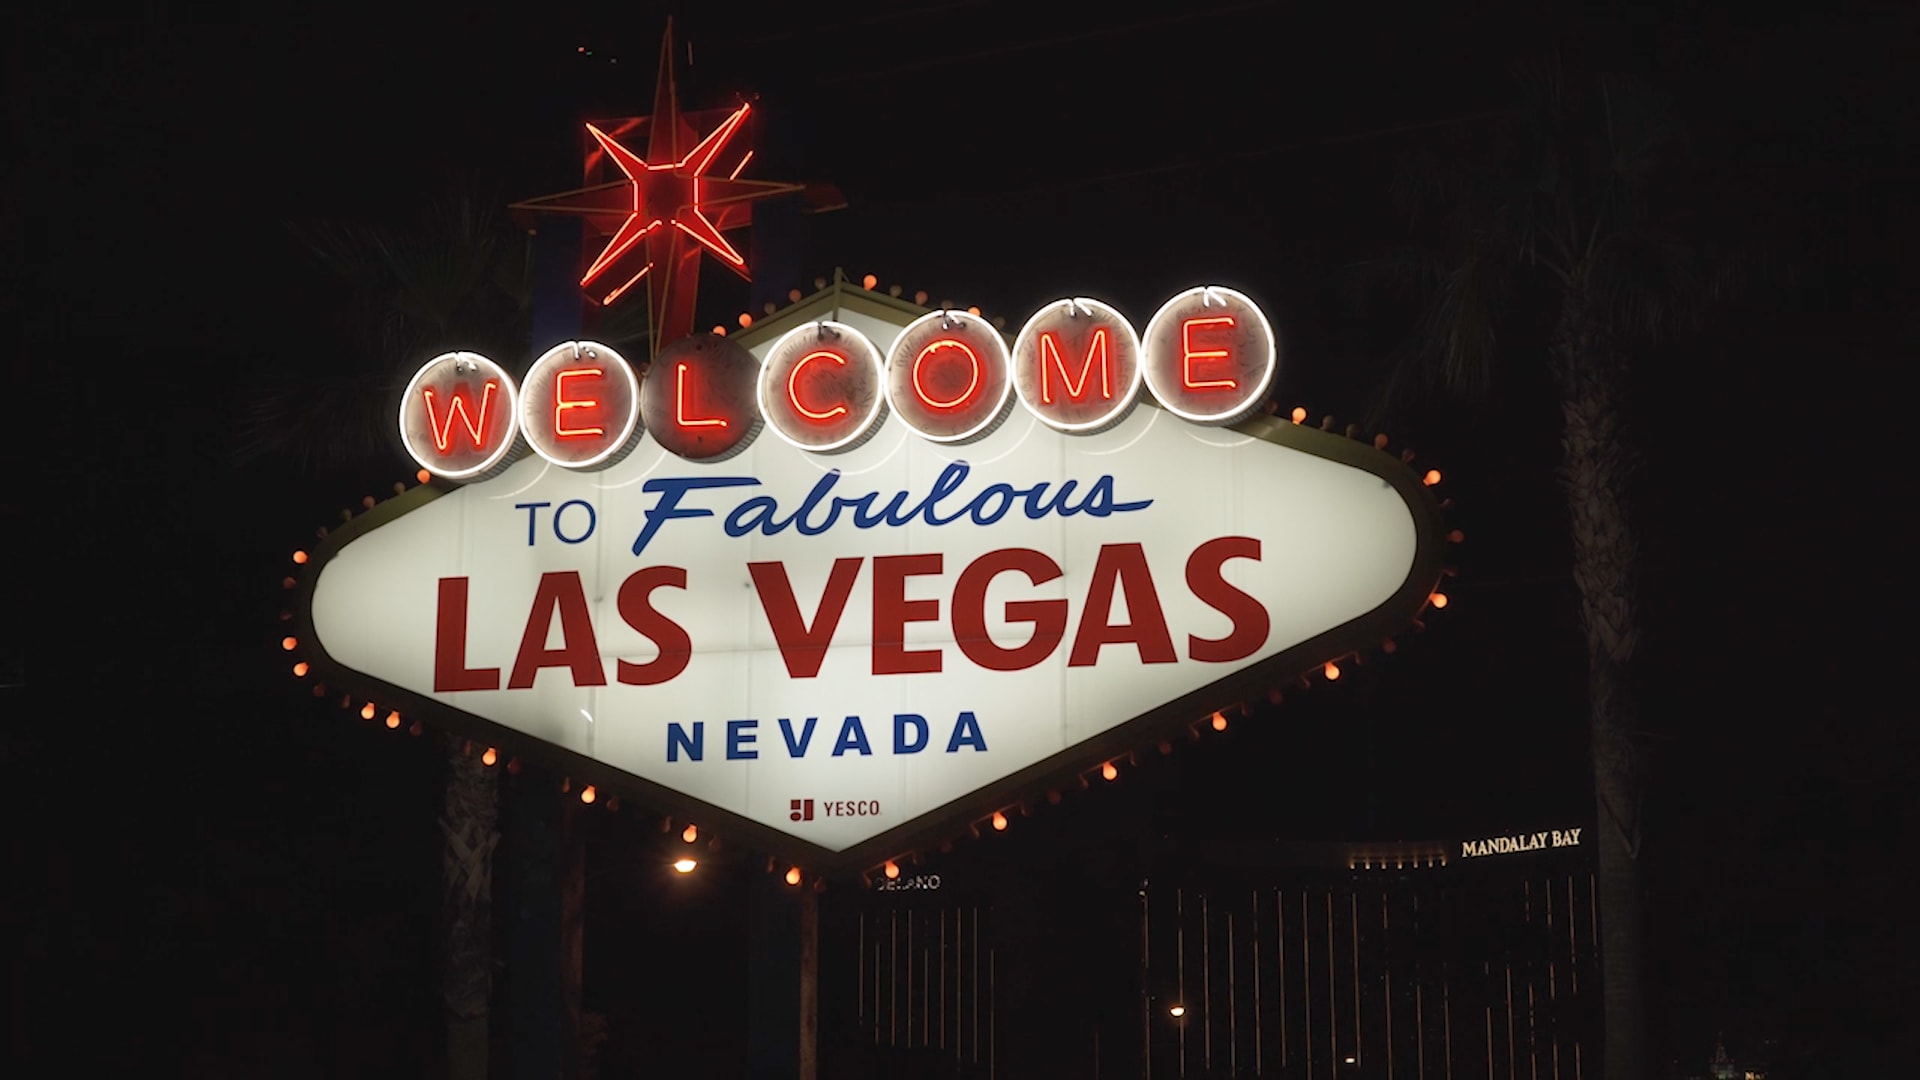 Welcome to fabulous las vegas everything you need to know about the sign